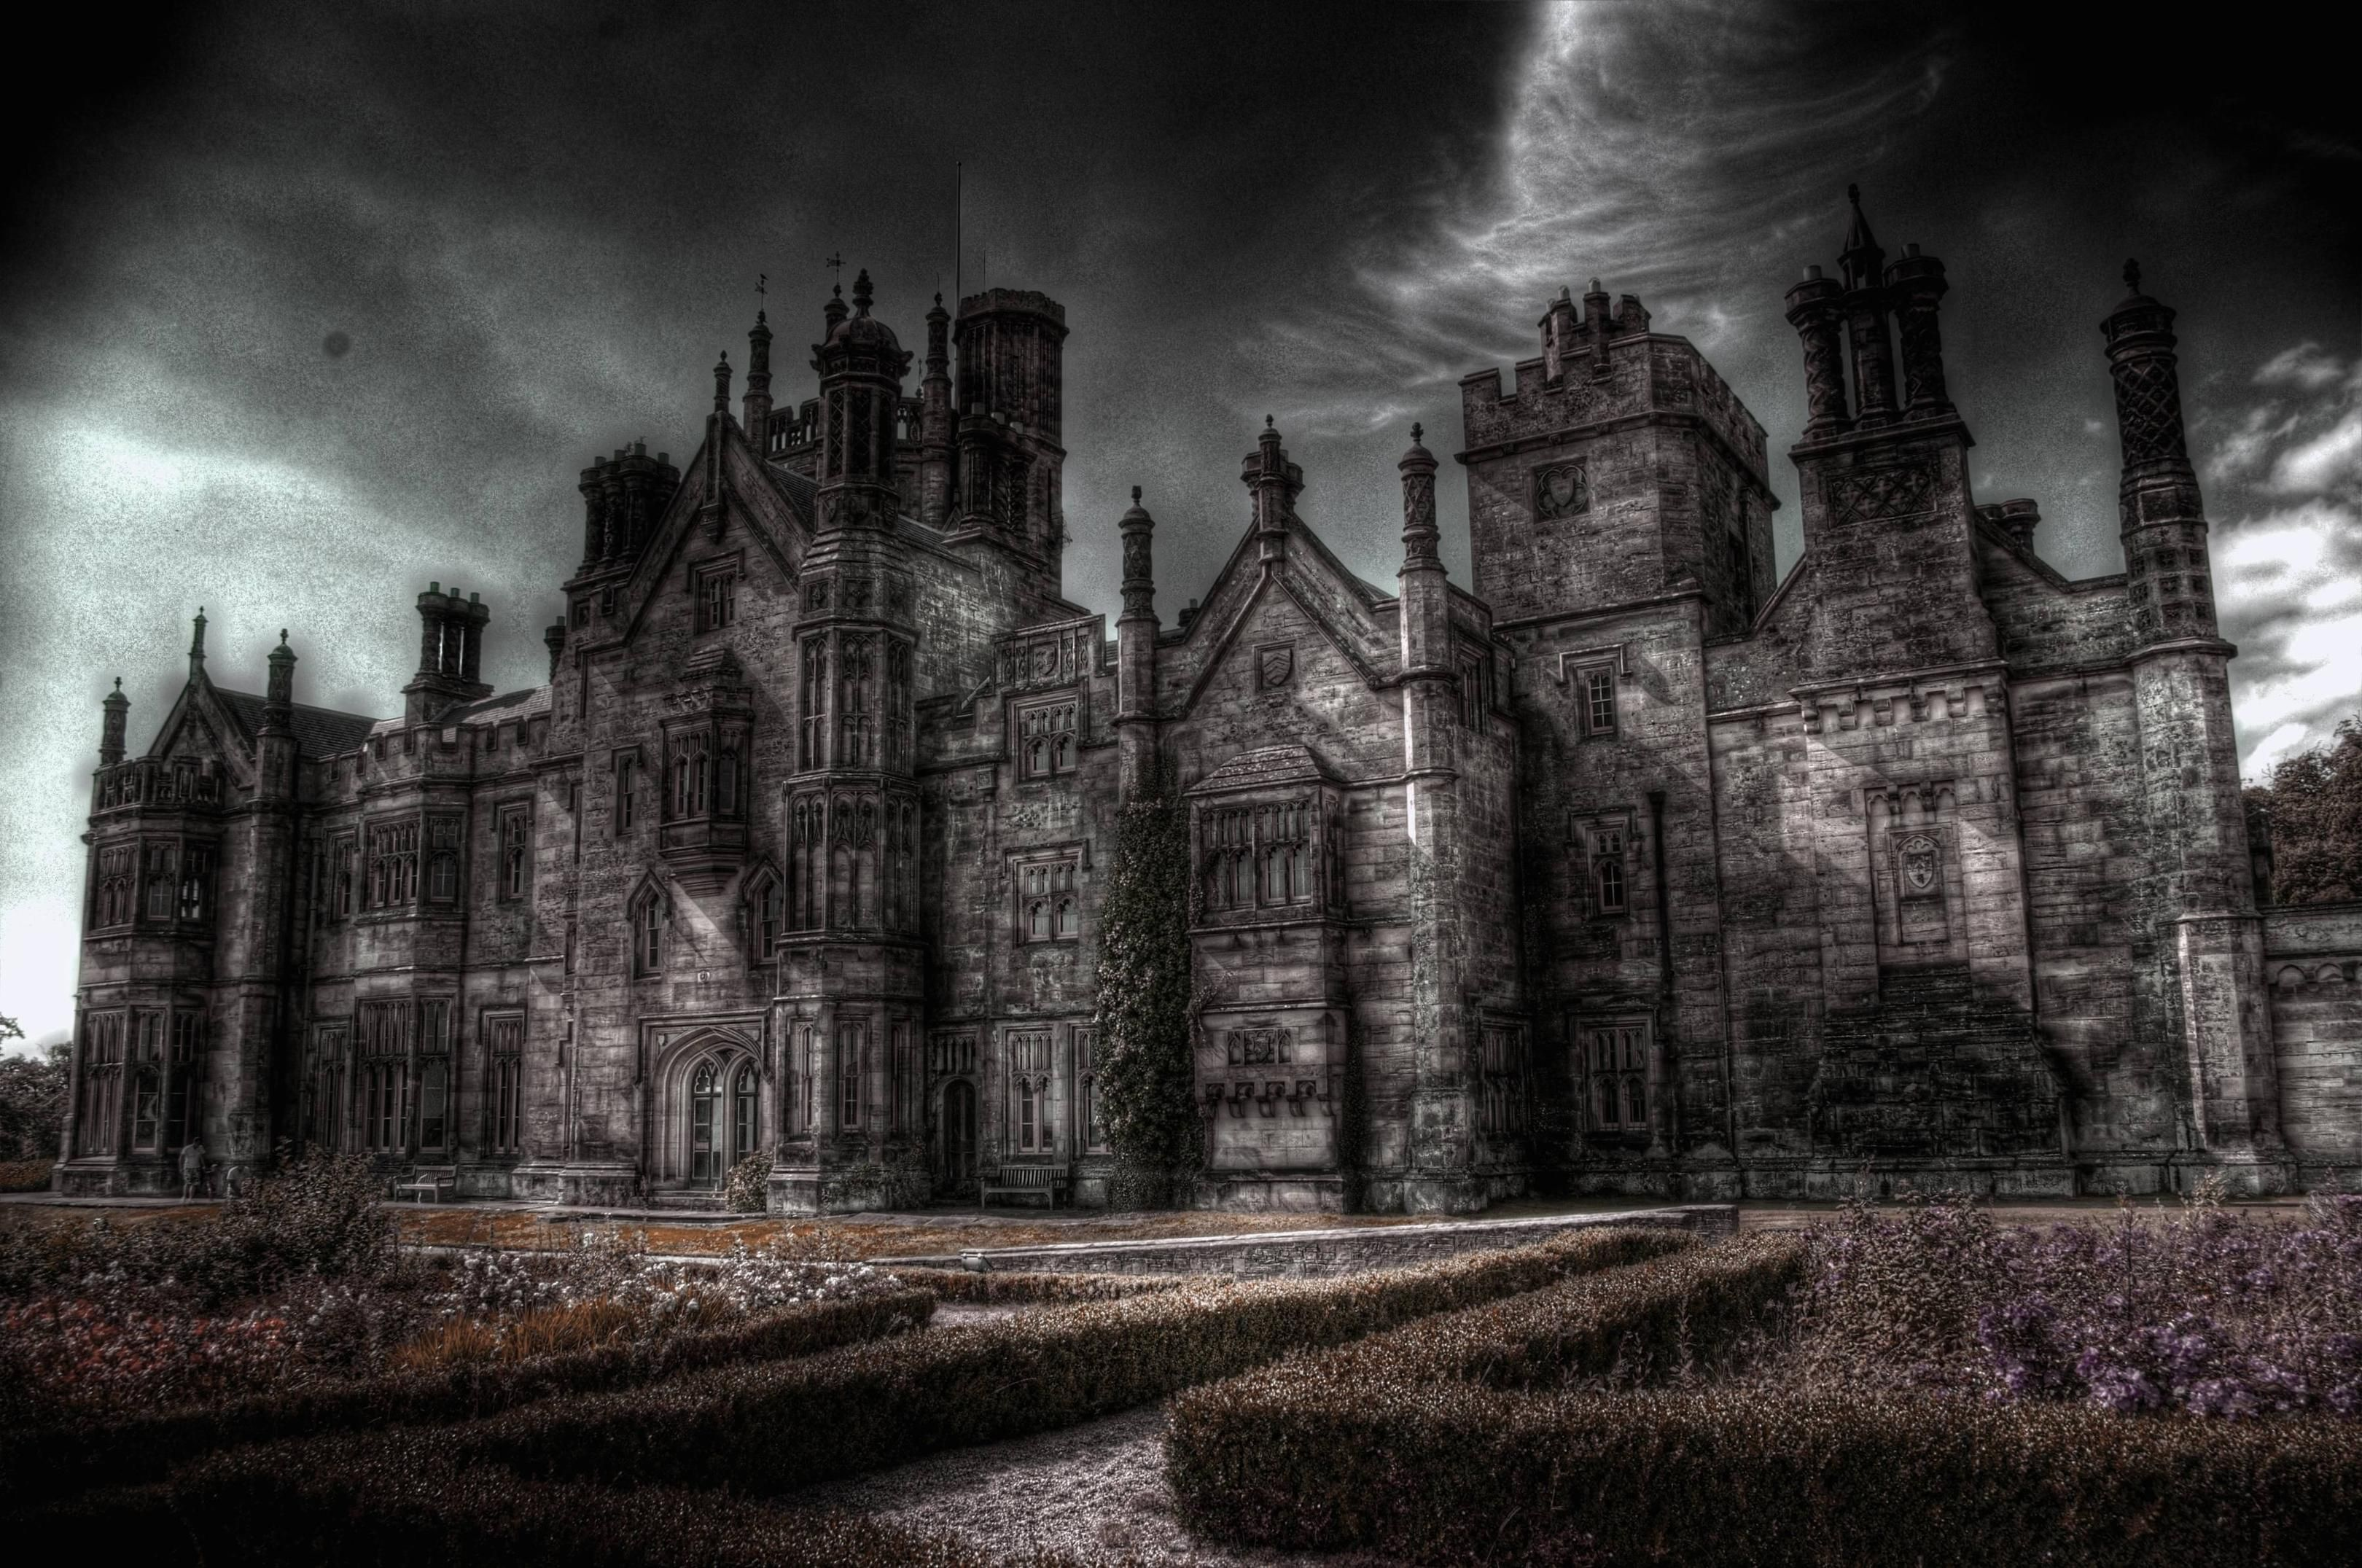 Gothic Castle Wallpapers   Top Gothic Castle Backgrounds 3240x2151